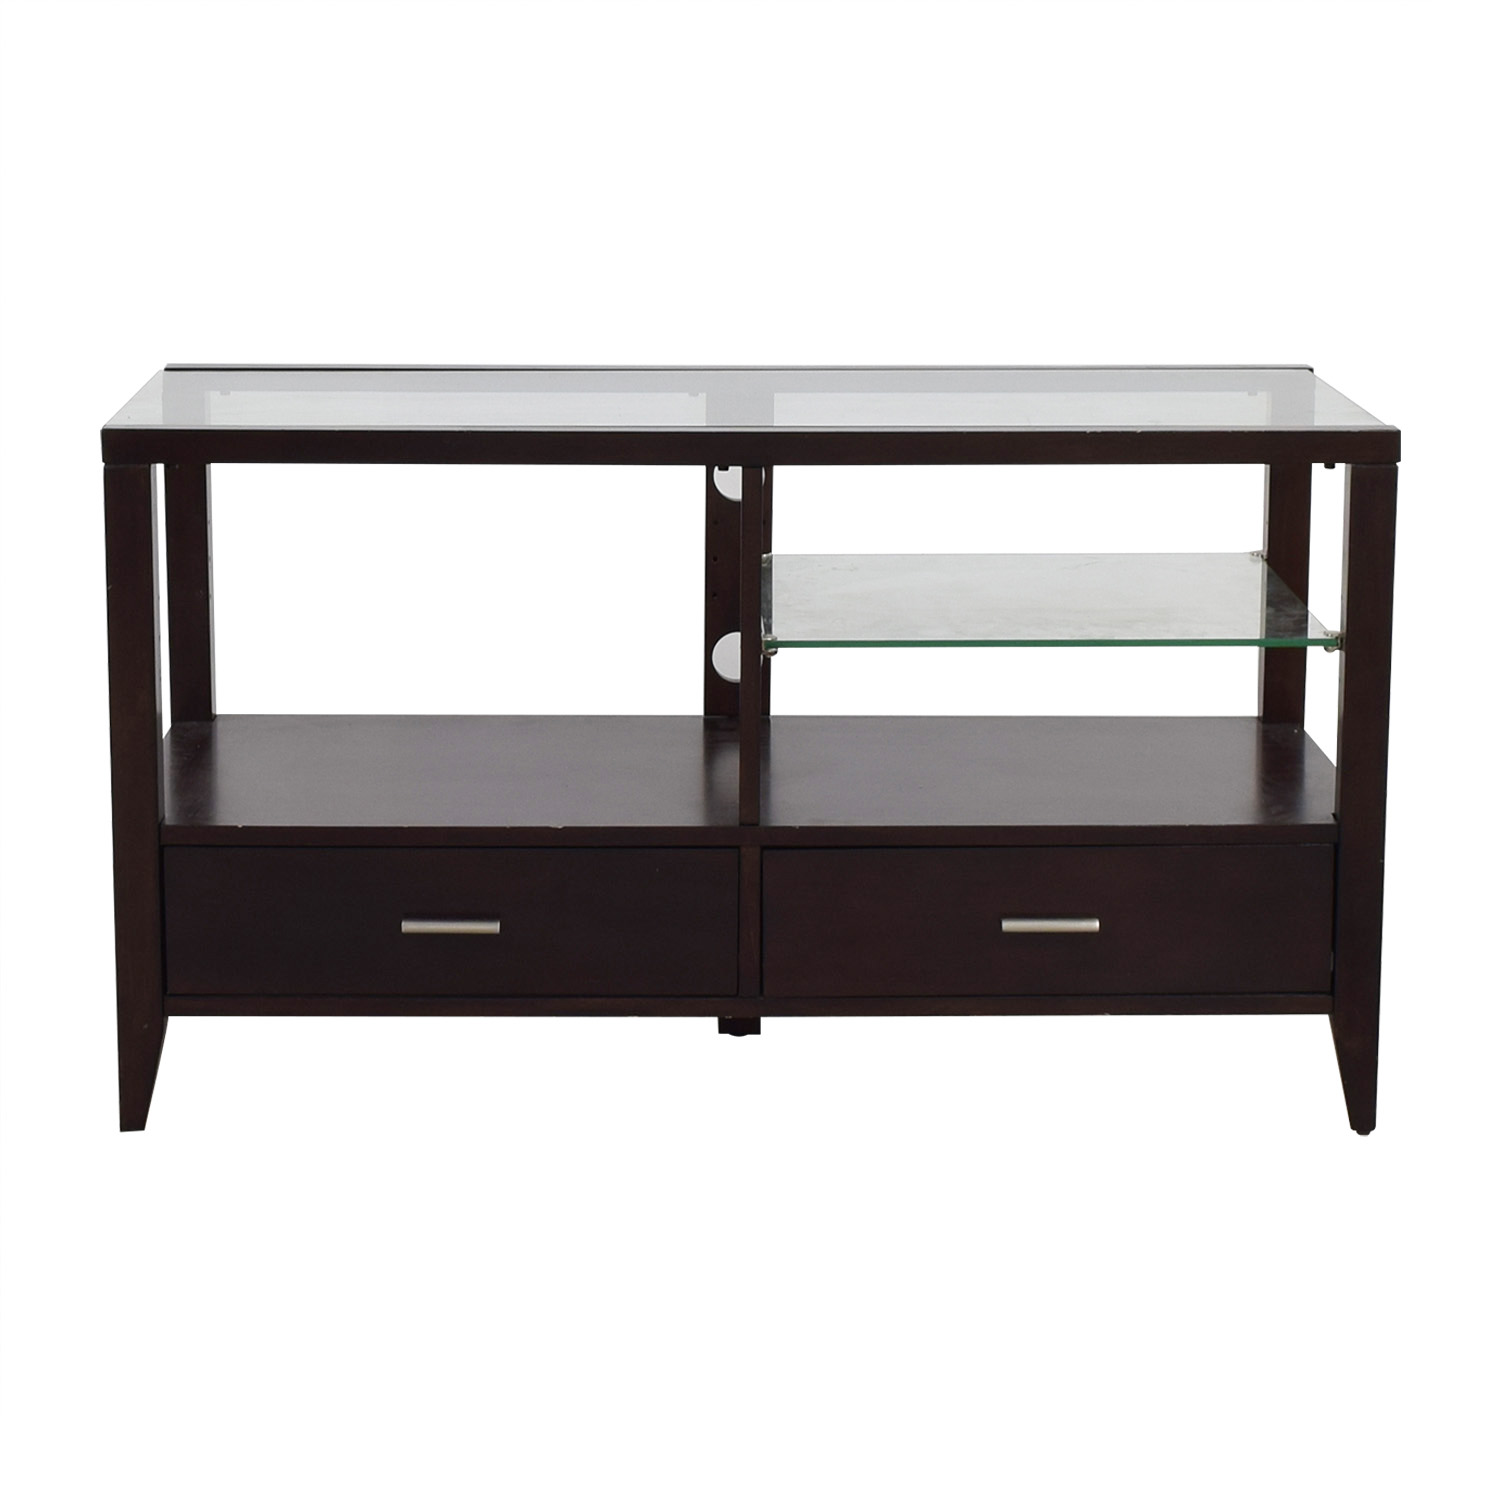 87 Off Belfort Furniture Belfort Furniture Wood And Glass